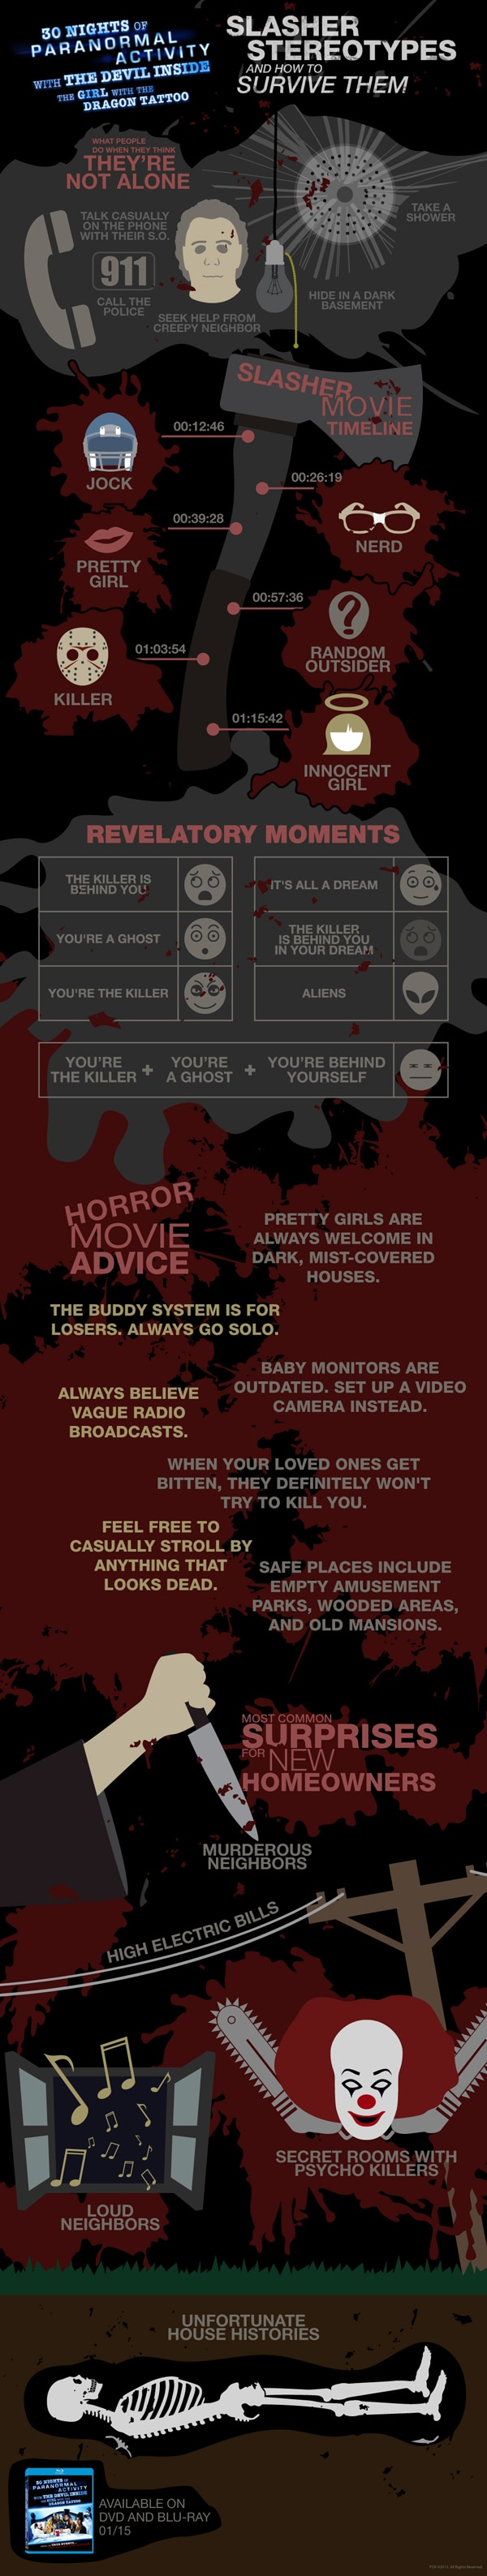 New Infographic for 30 Nights of Paranormal Activity with the Devil Inside the Girl with the Dragon Tattoo Helps You Survive Slashers